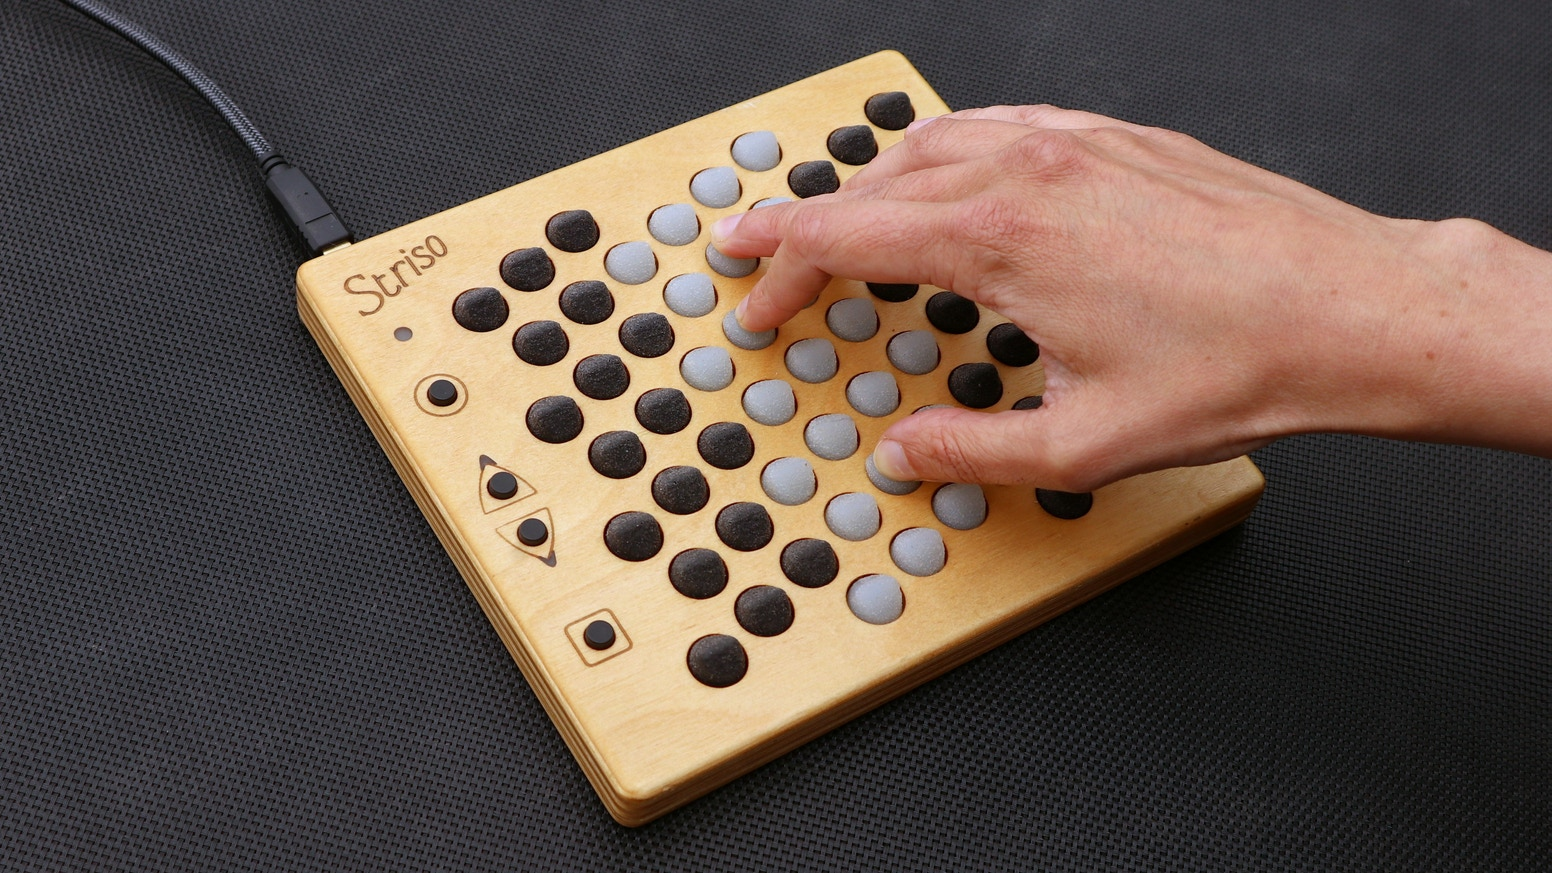 An expressive instrument/MIDI controller with an innovative note layout that helps understand music theory